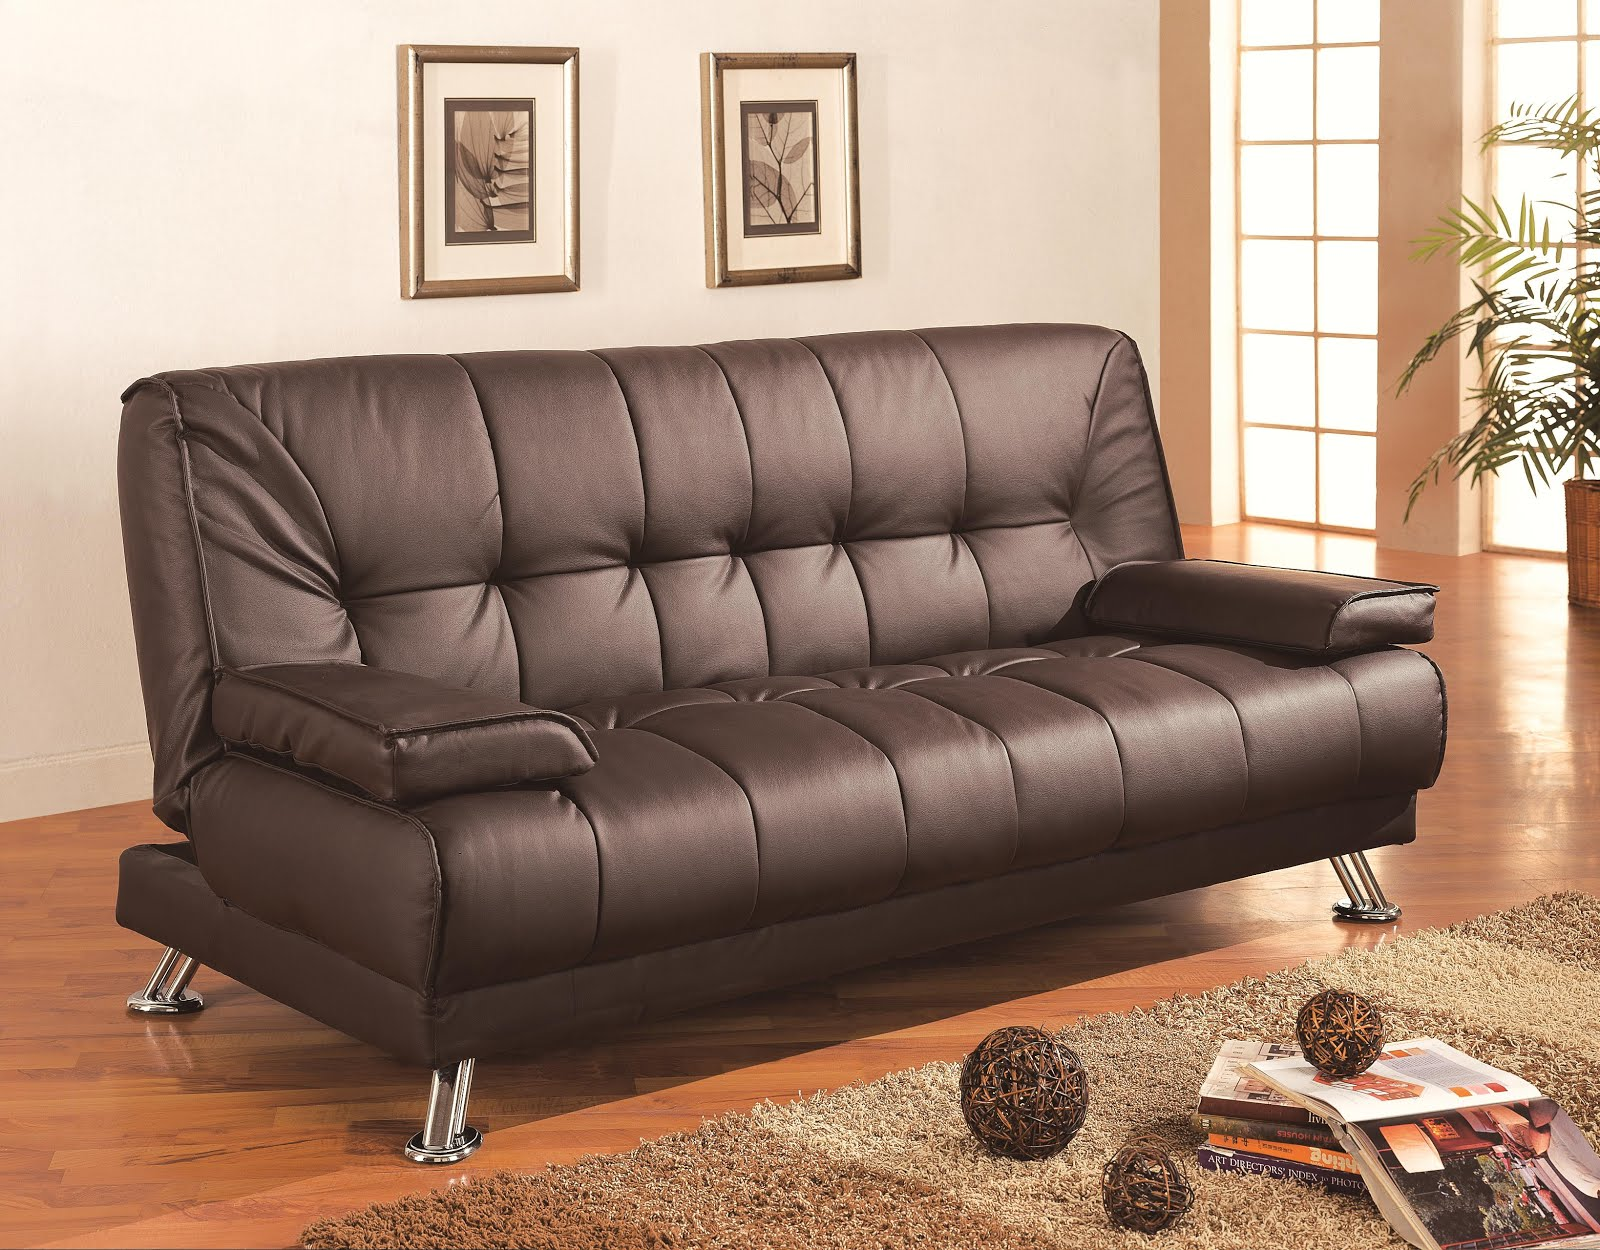 Simple Review About Living Room Furniture Couch That ...